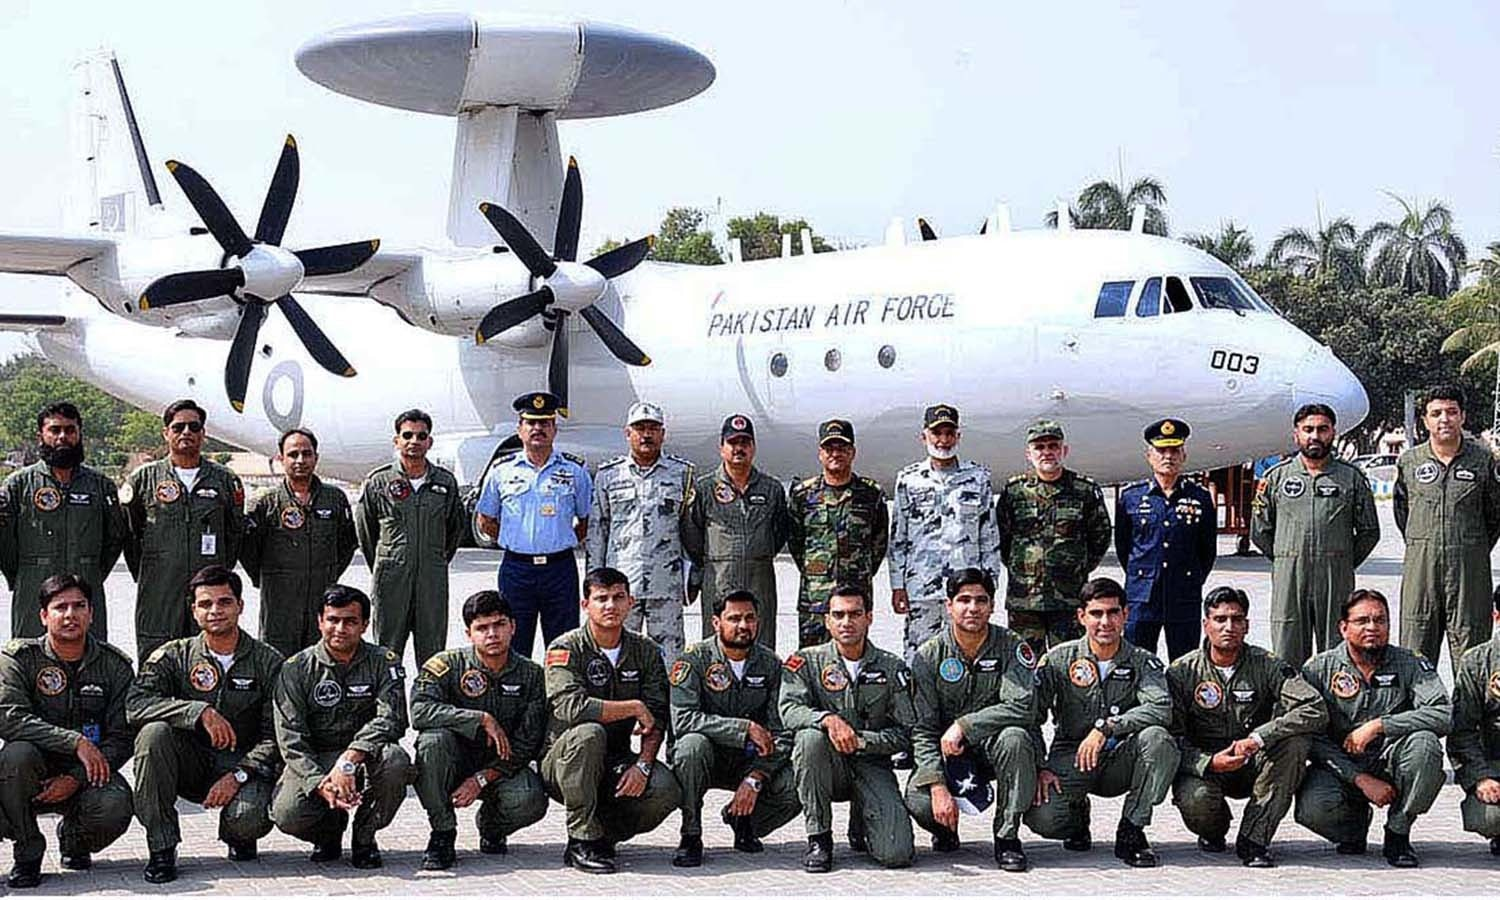 Chief of Naval Staff Admiral Muhammad Zakaullah and Air Chief Marshal Sohail Aman Chief of Air Staff, Pakistan Air Force, with the participating crew of the exercise Sea Spark. — APP